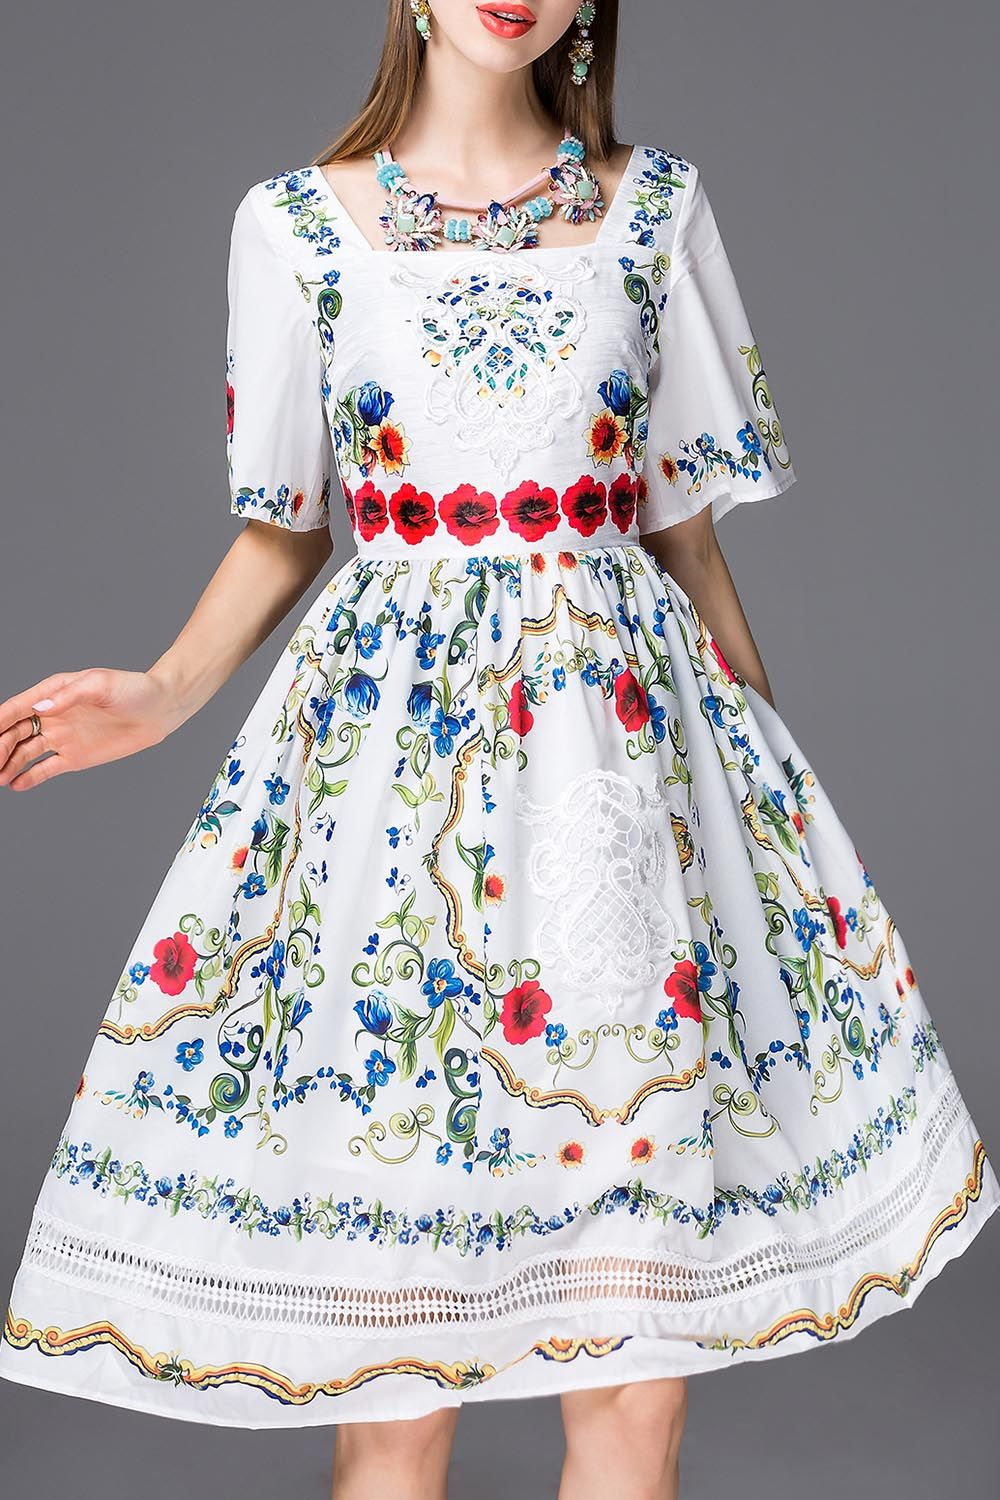 Embroidery Bell Sleeve Flare Dress Click On Picture To Purchase Rok Jeans 7 8 Drakblue Jsk5012 Allsize